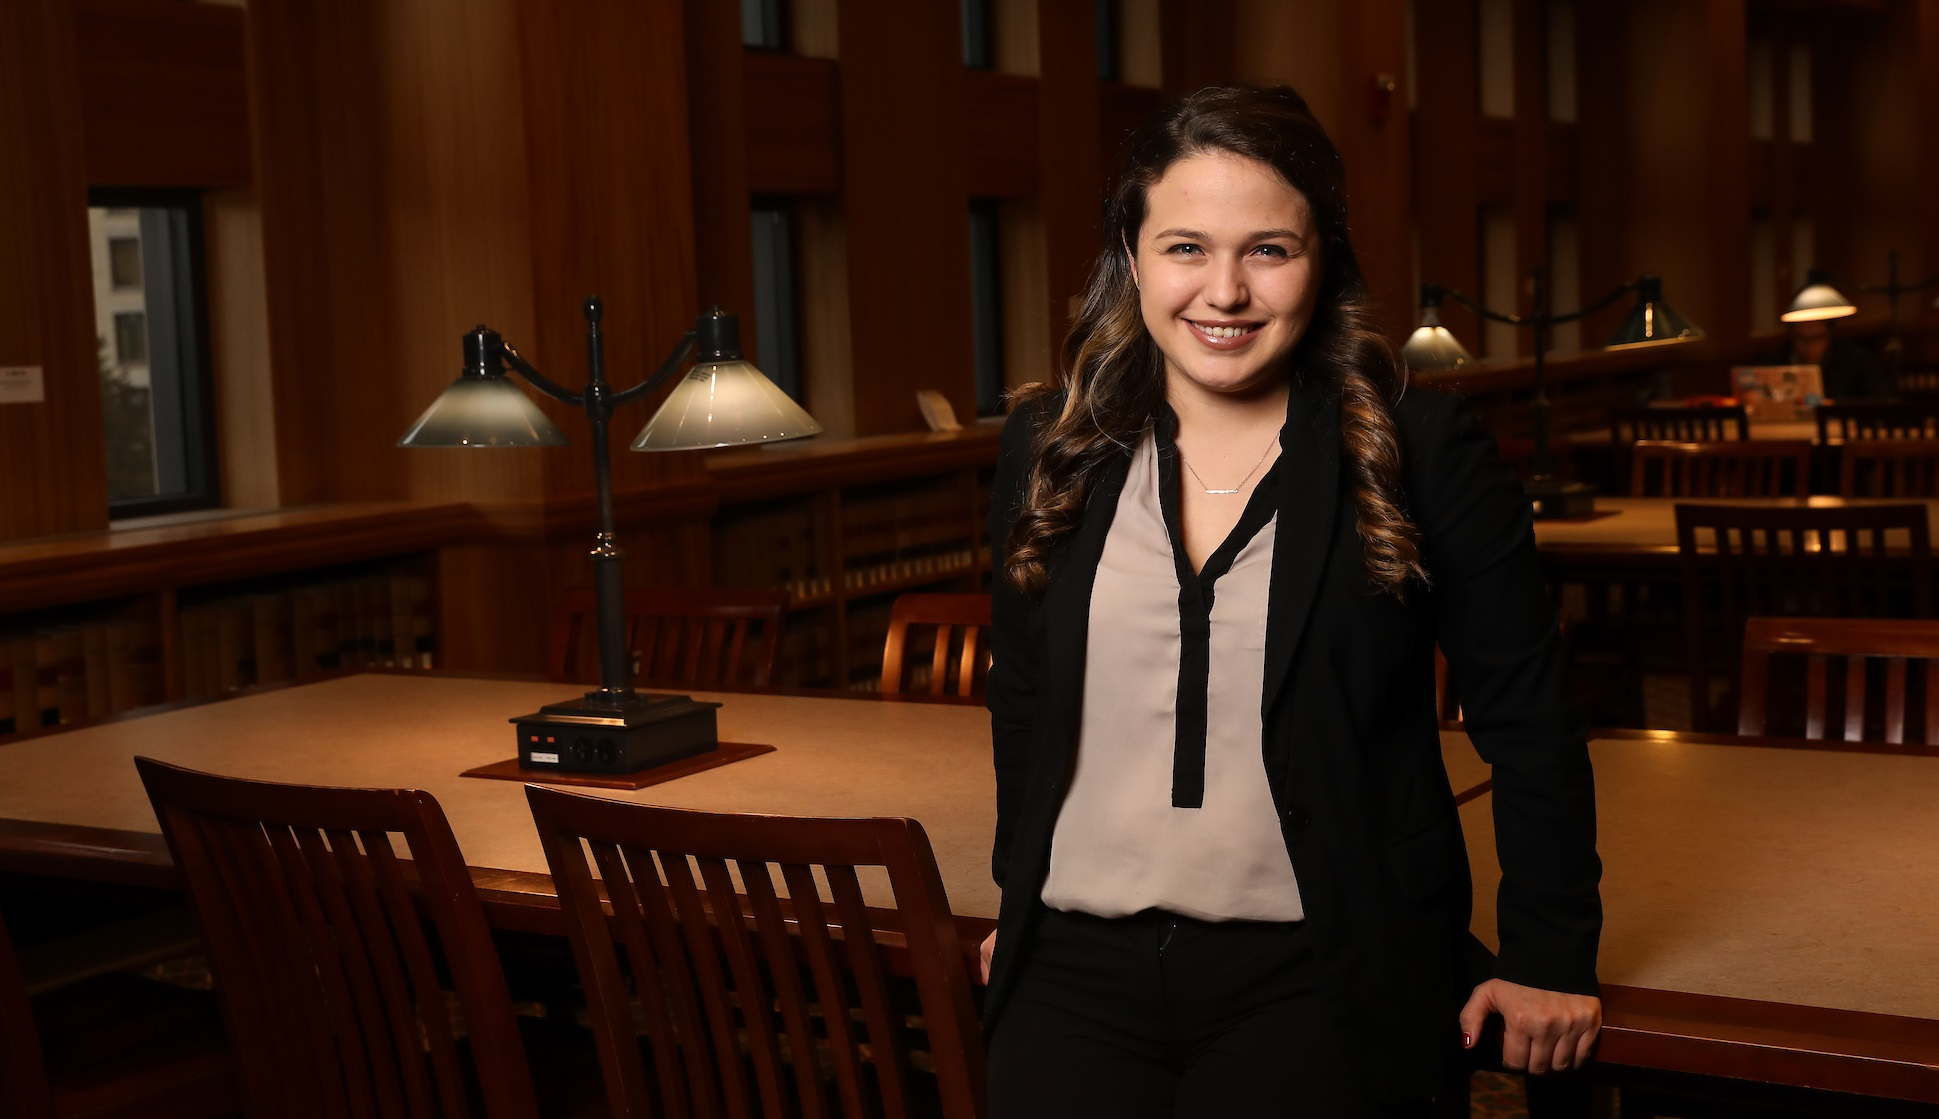 Suffolk Law student Stephanie Herbello JD'18